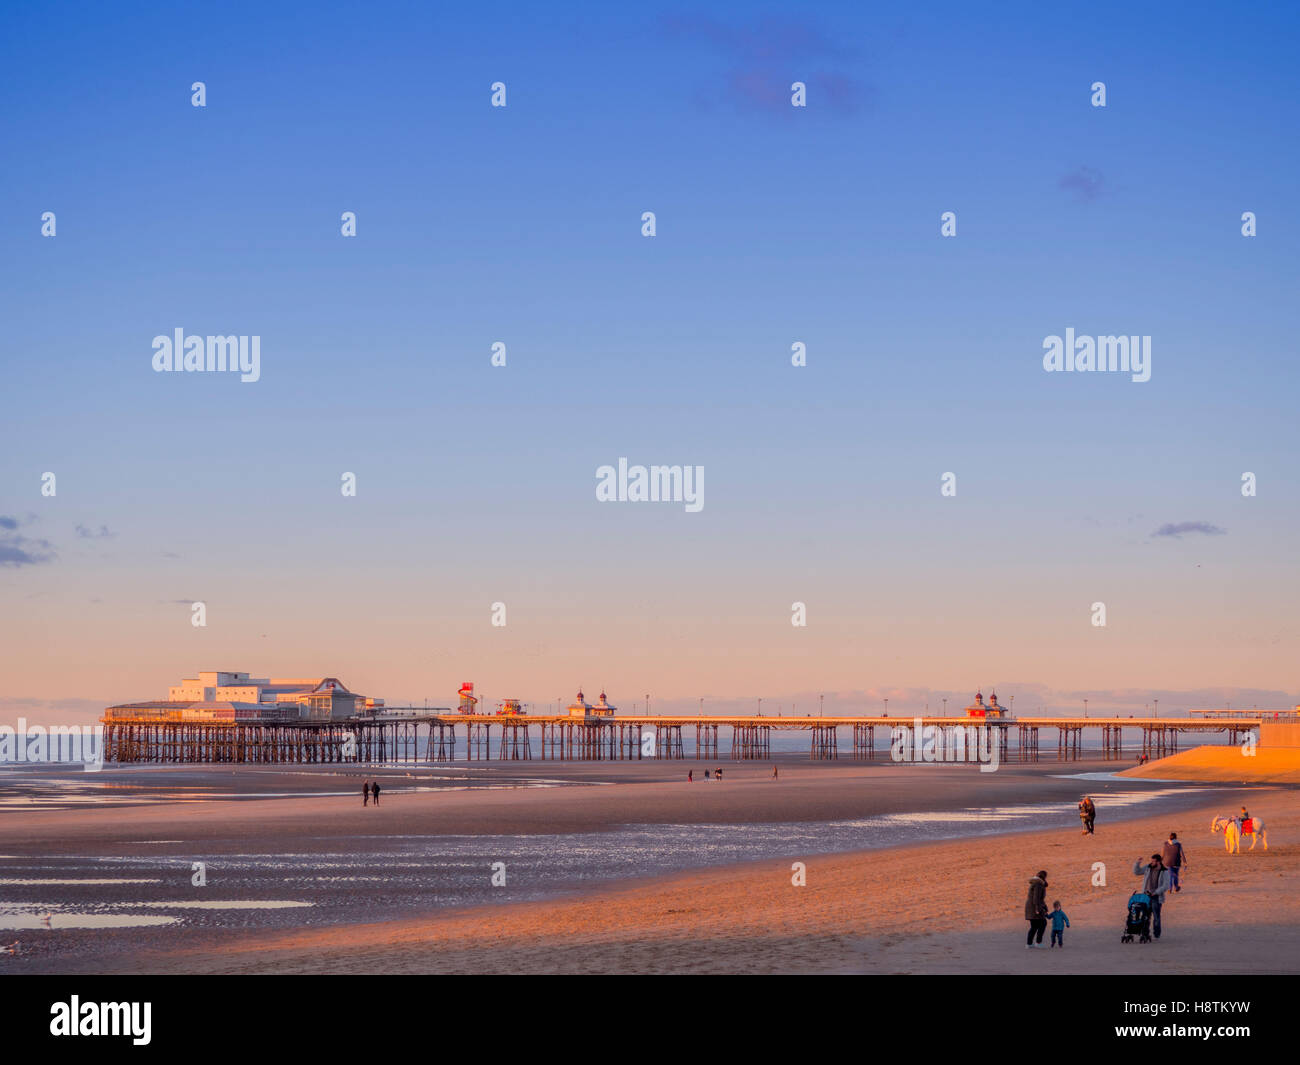 Central pier and beach, early evening, Blackpool, Lancashire, UK. - Stock Image